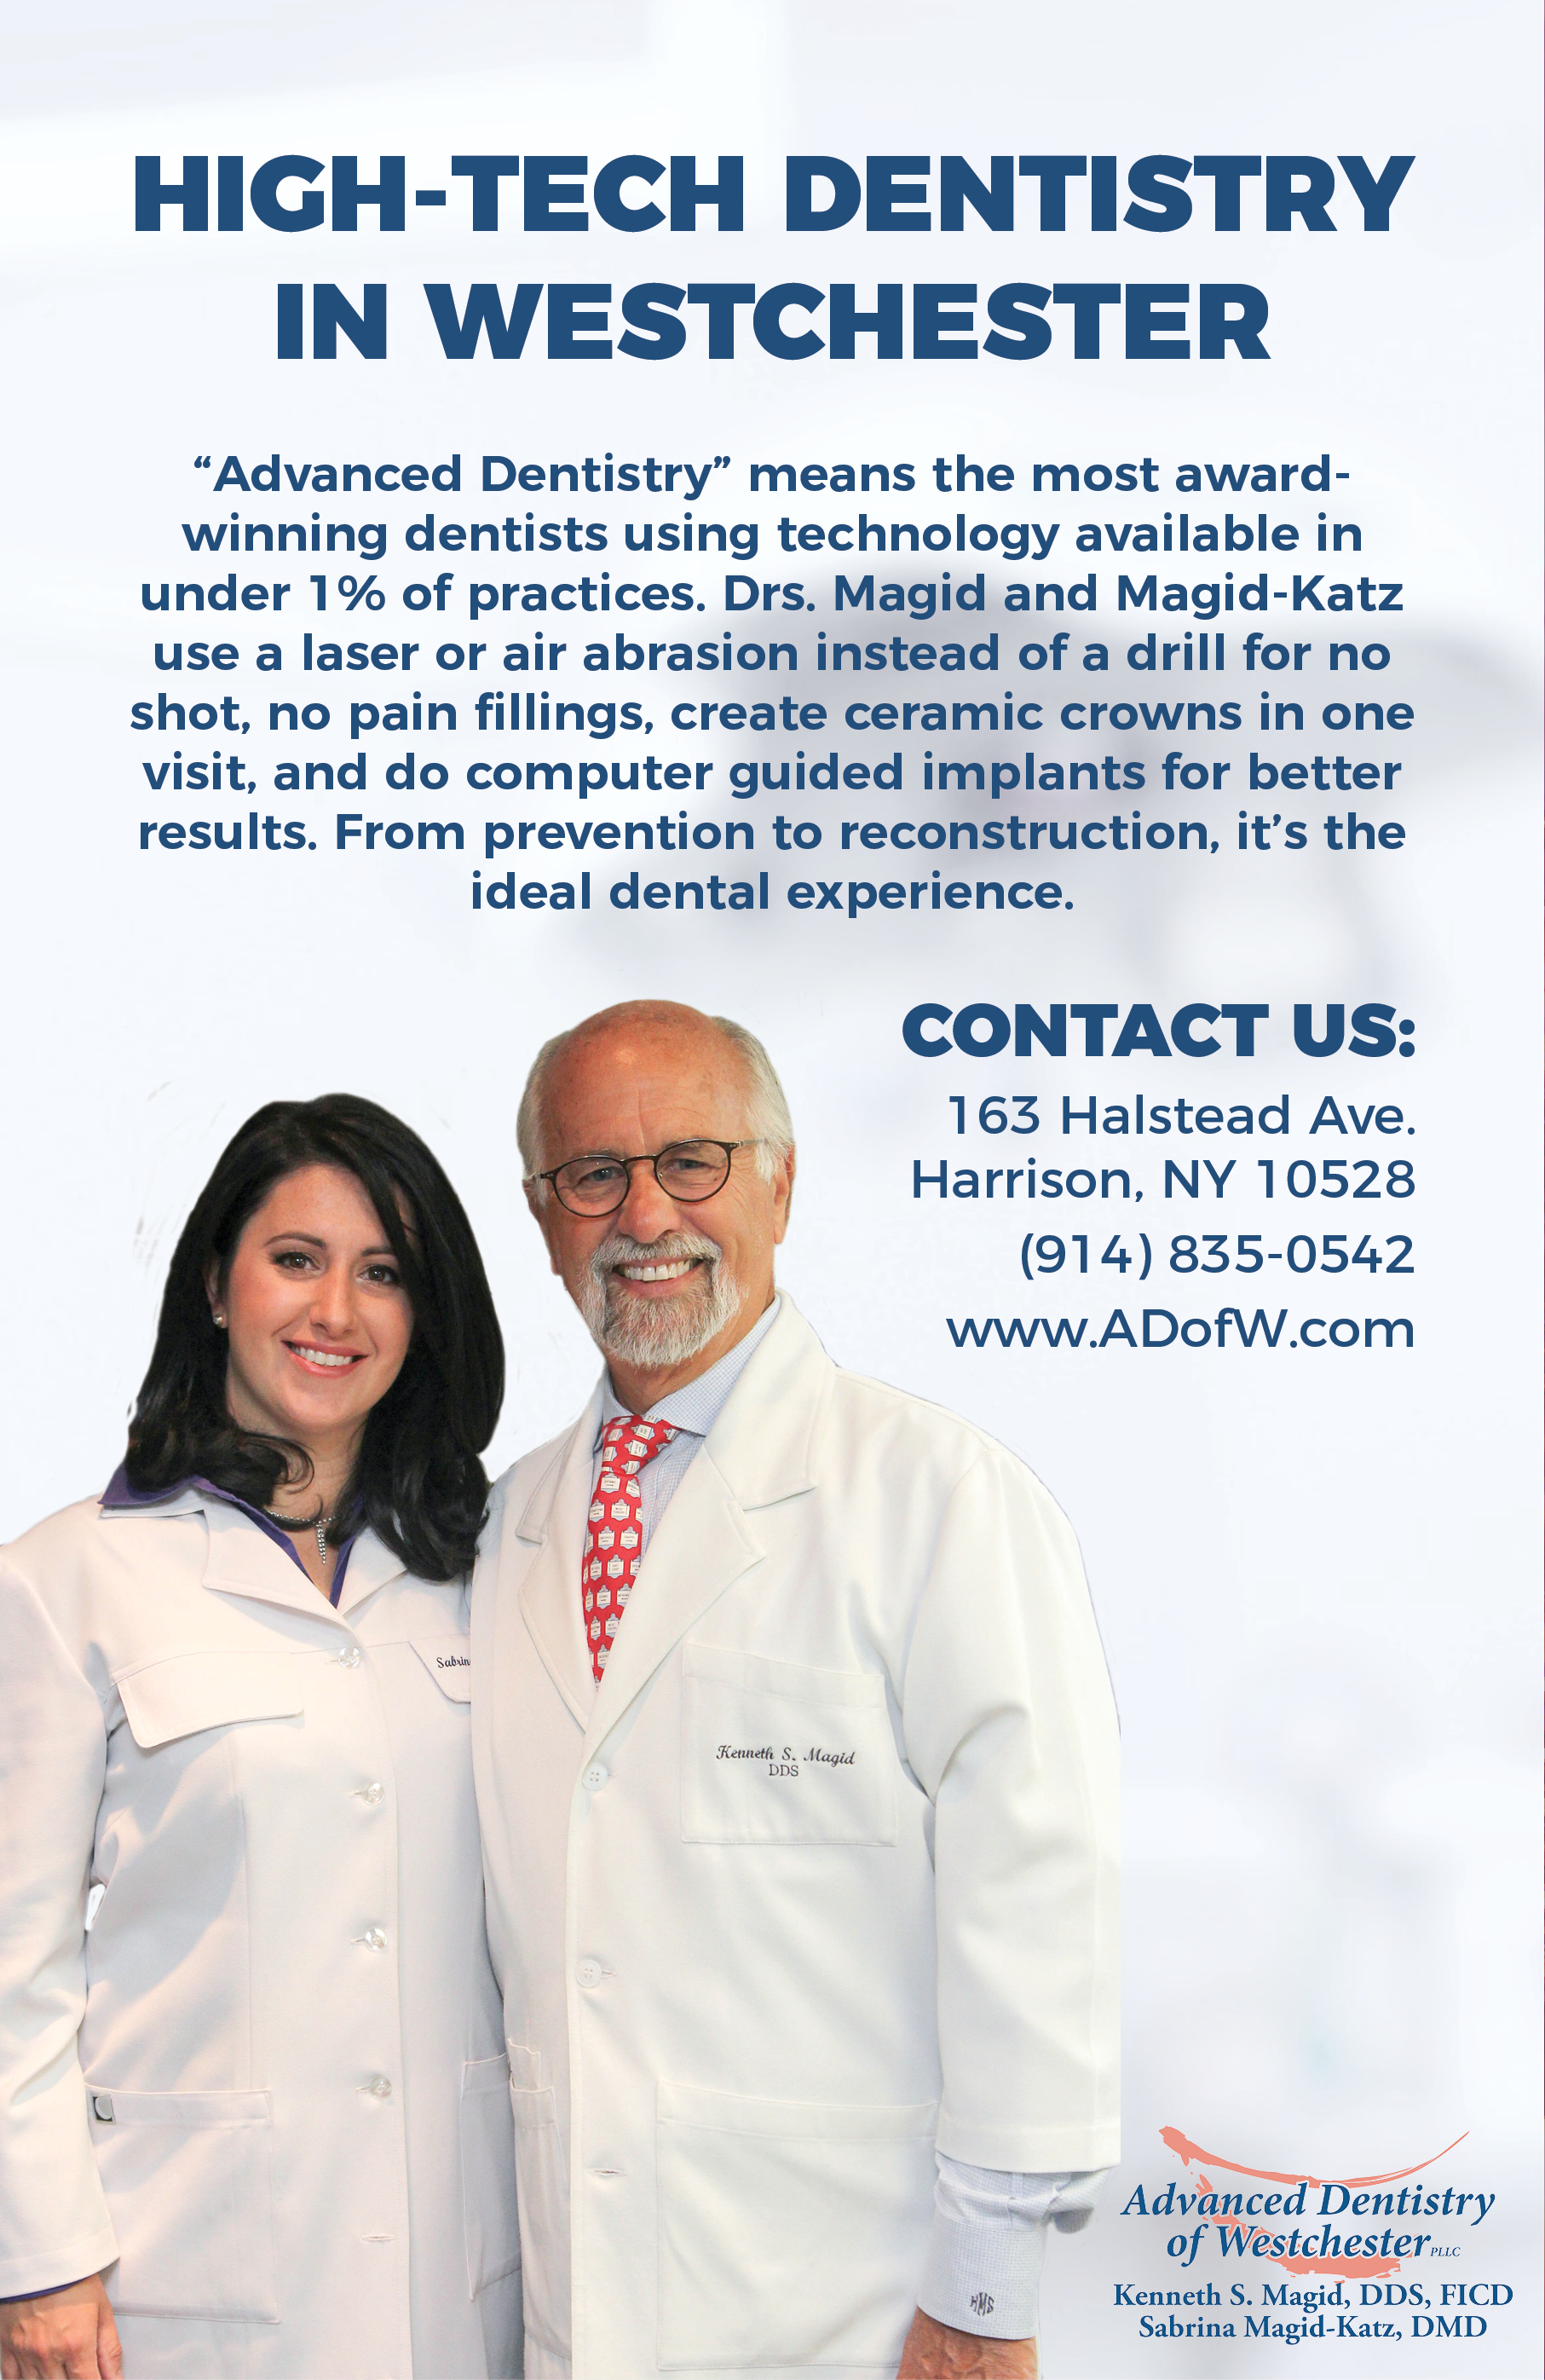 high technology digital dentistry Westchester ny